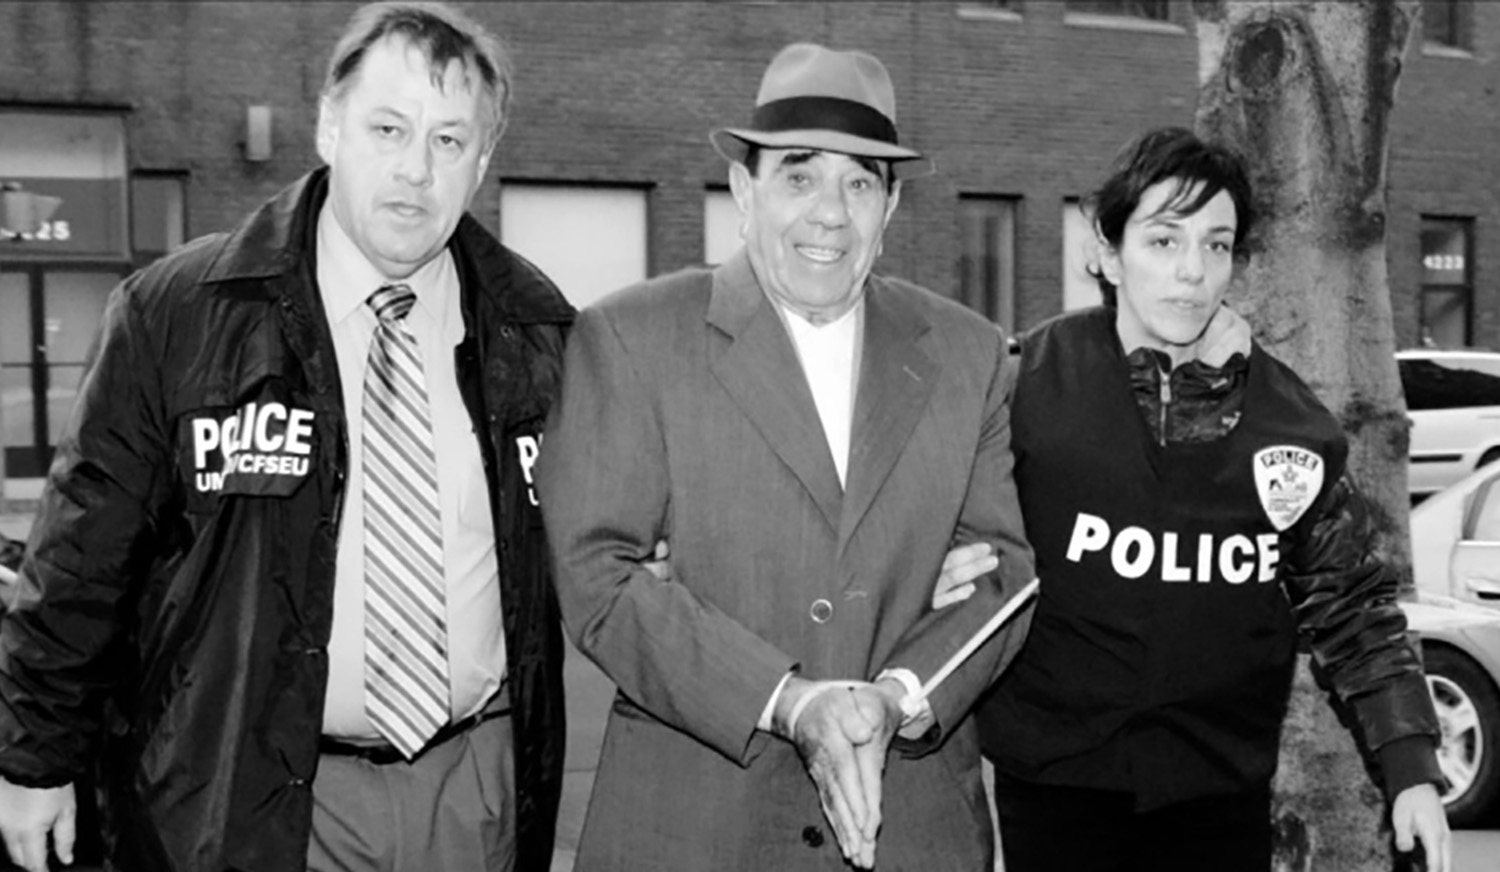 nicolo rizzuto - 5 notorious canadian mobsters